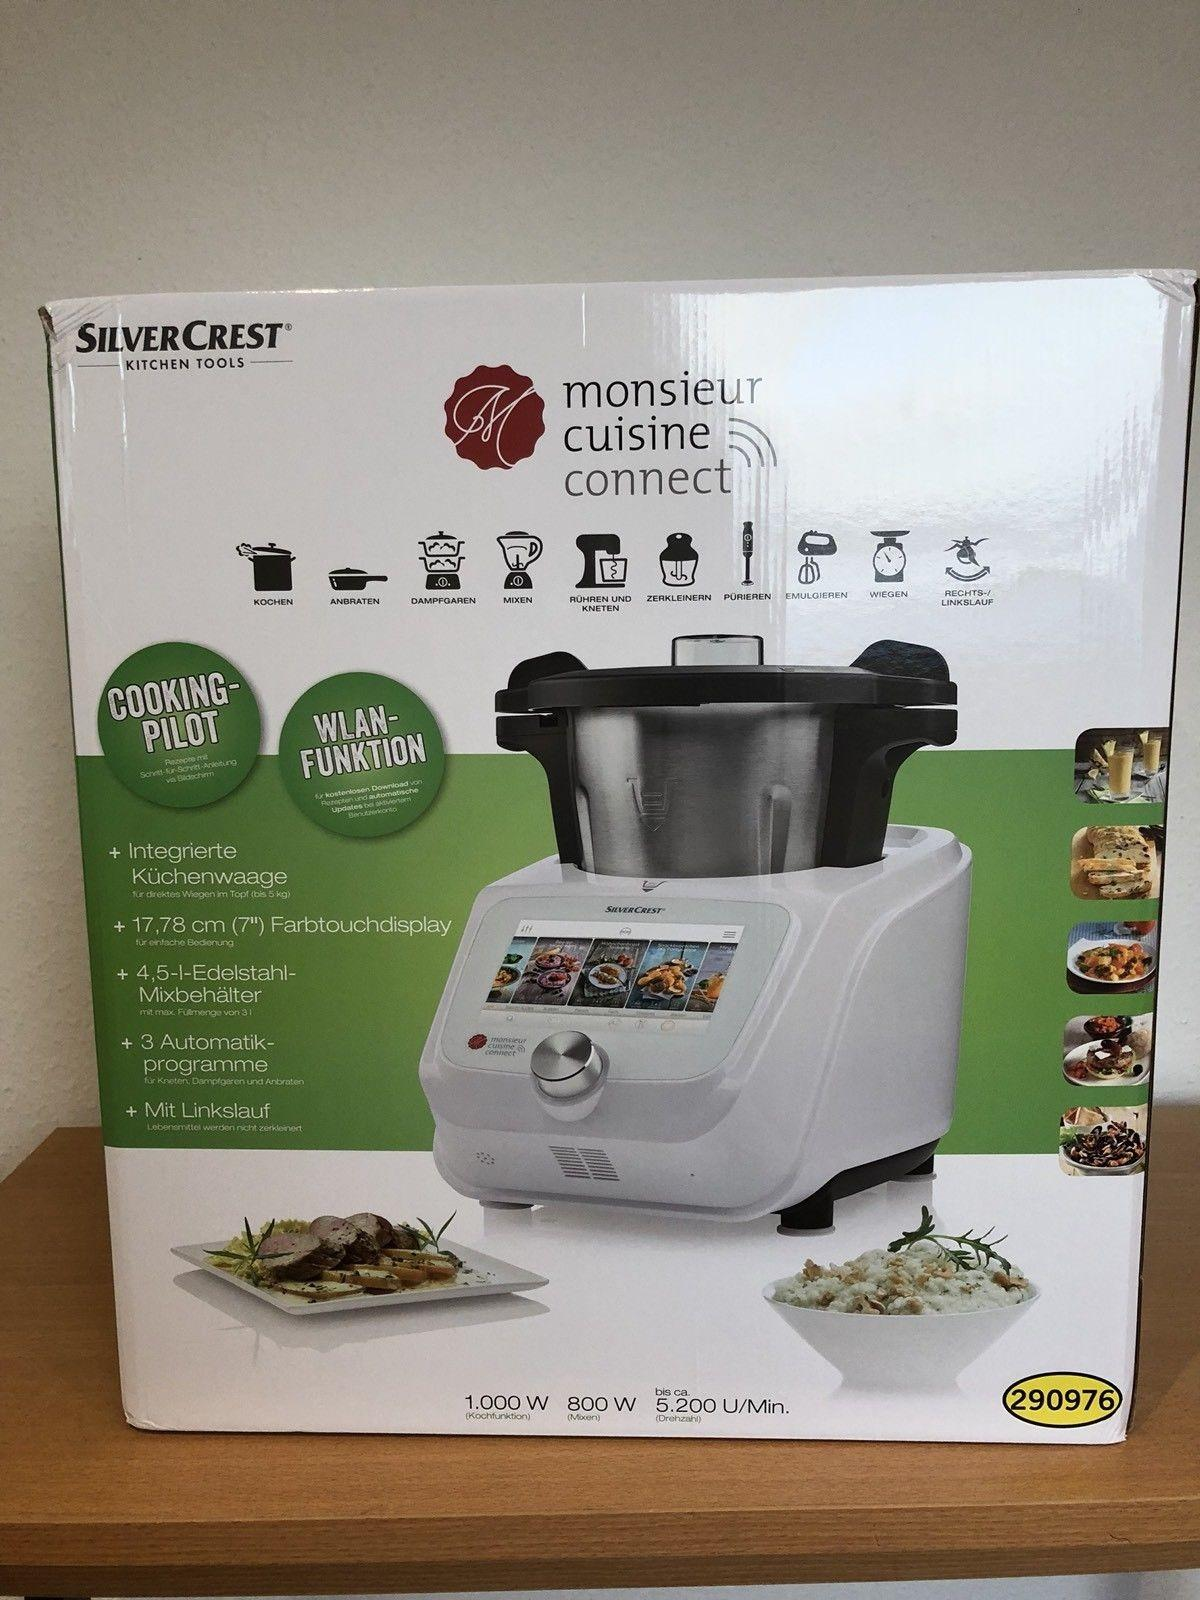 Lidl Silvercrest Monsieur Cuisine Connect In 83661 Lenggries Für 400